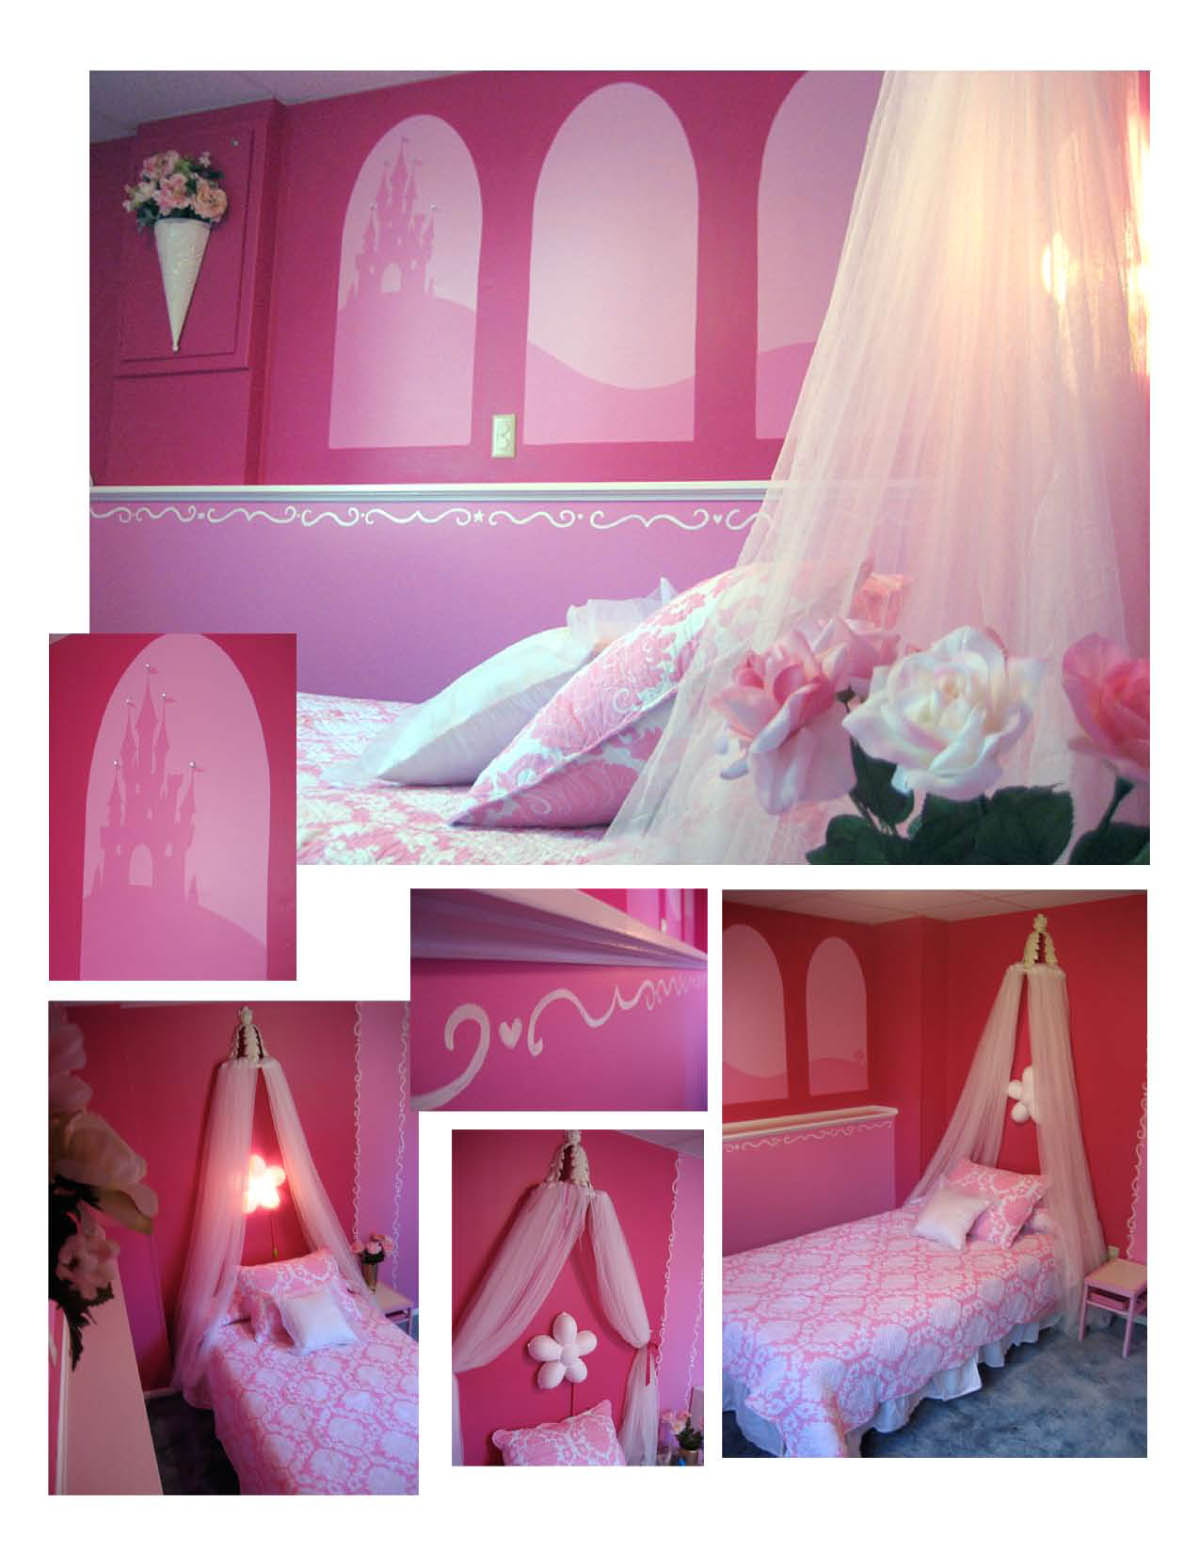 Id mommy diy princess themed bedroom by heidi panelli for Princess bedroom decor